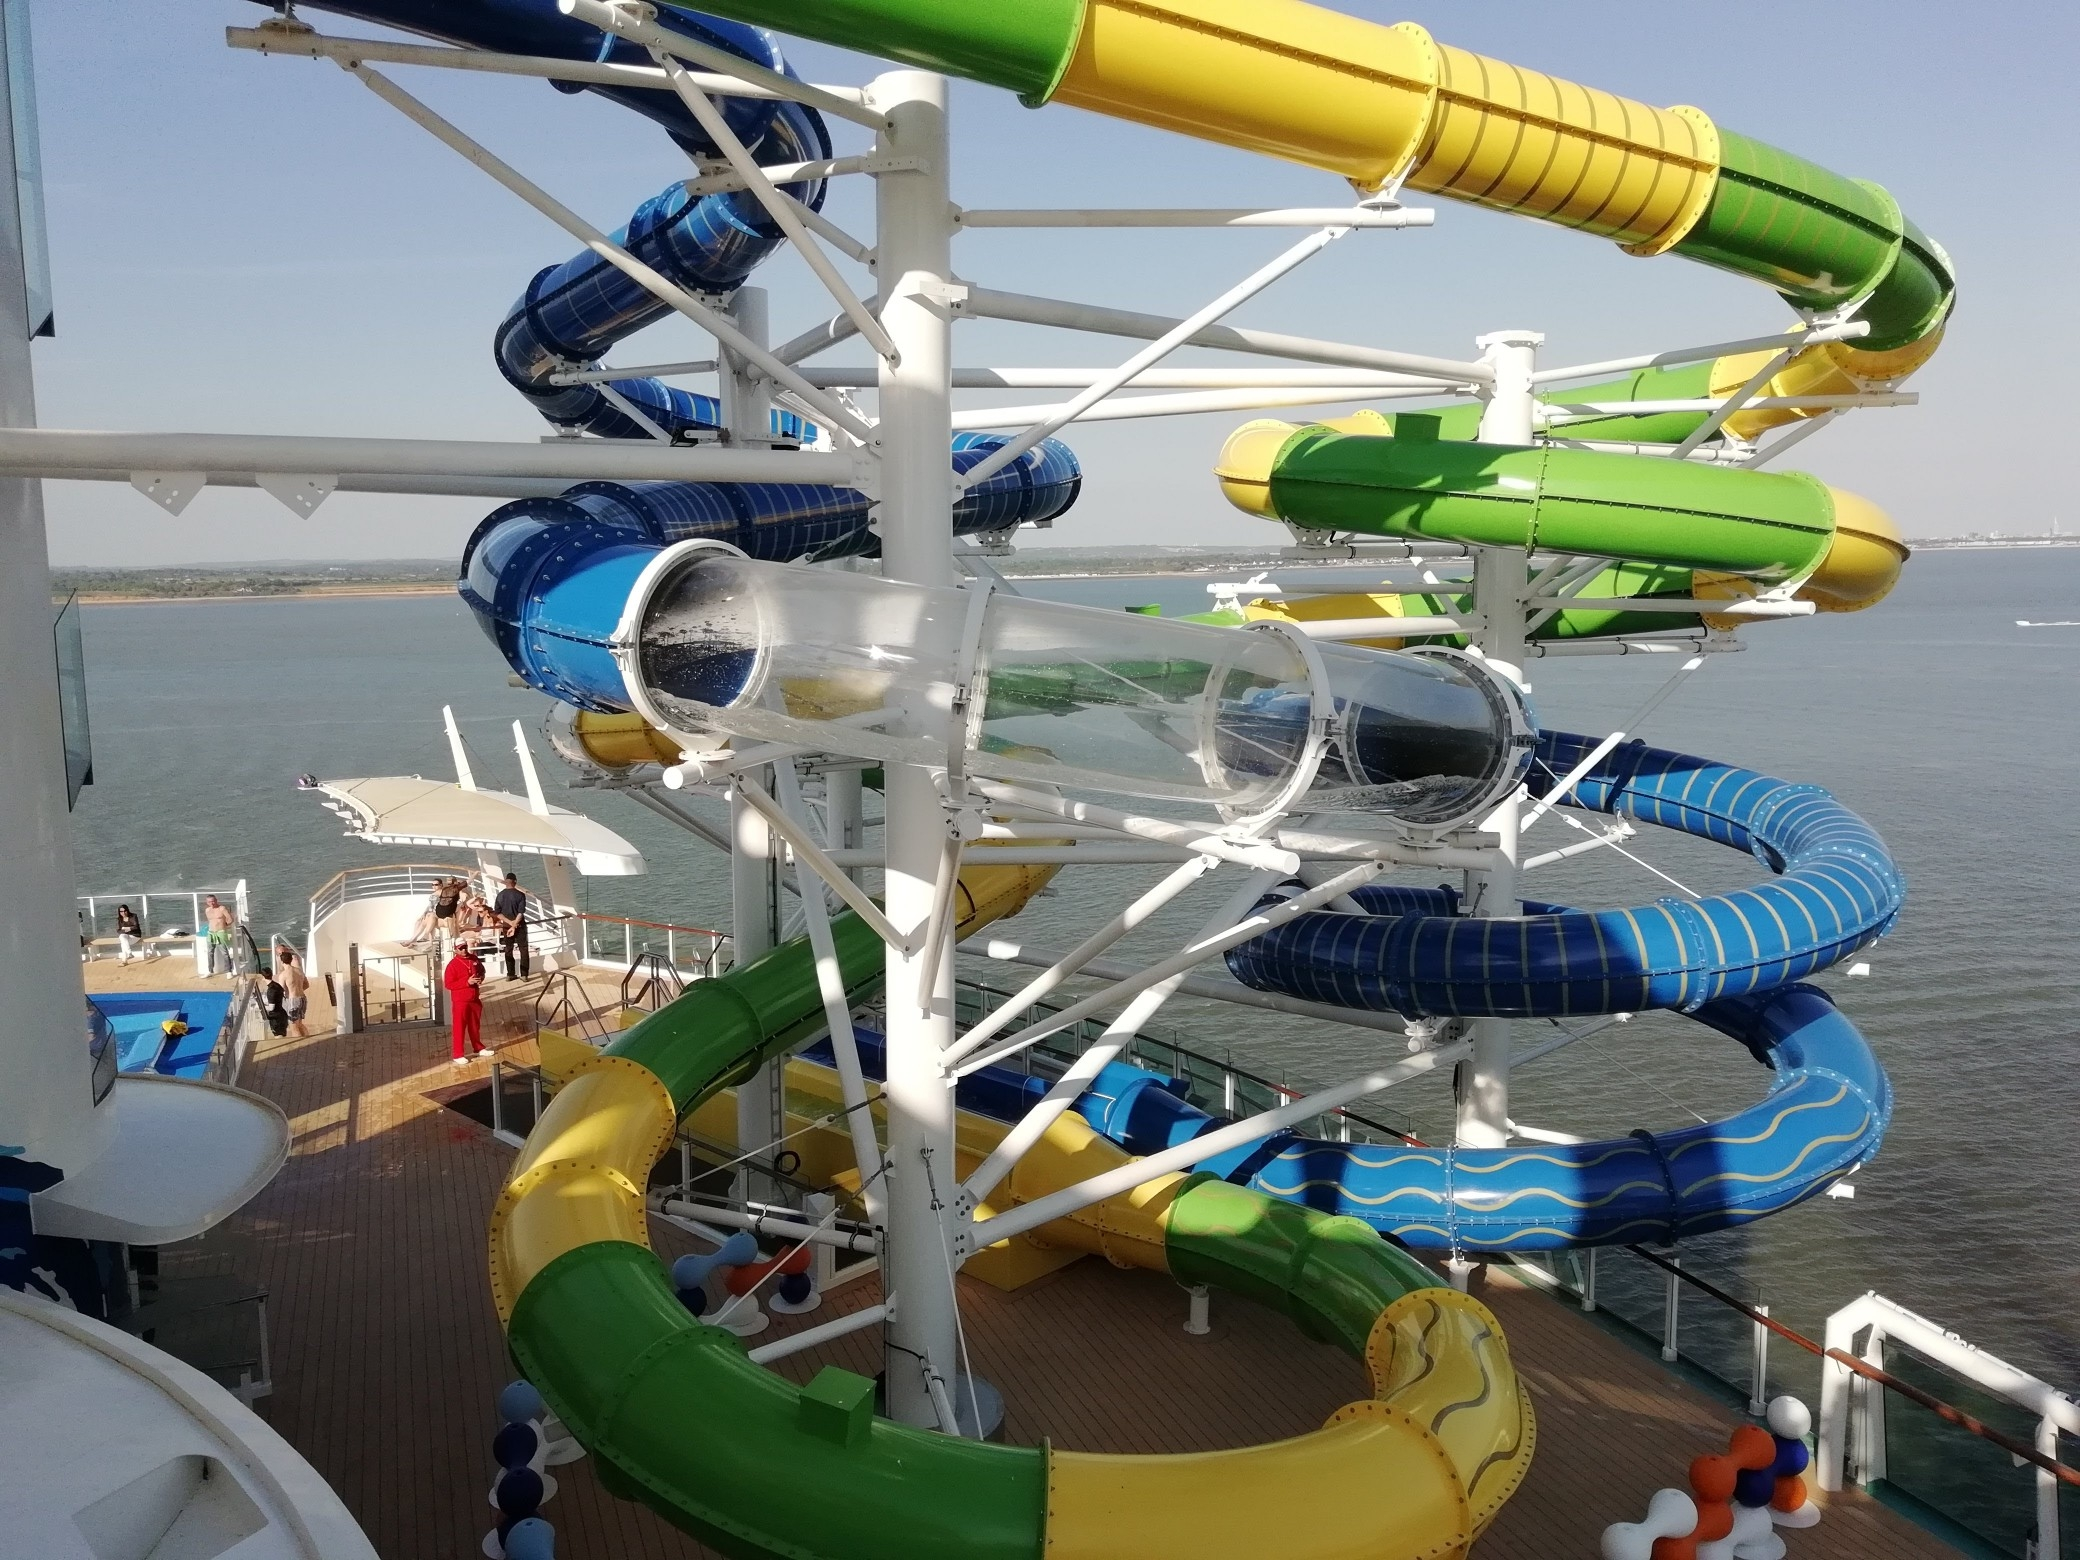 Sky Pad and The Perfect Storm on Independence of the Seas - Royal Caribbean (7)